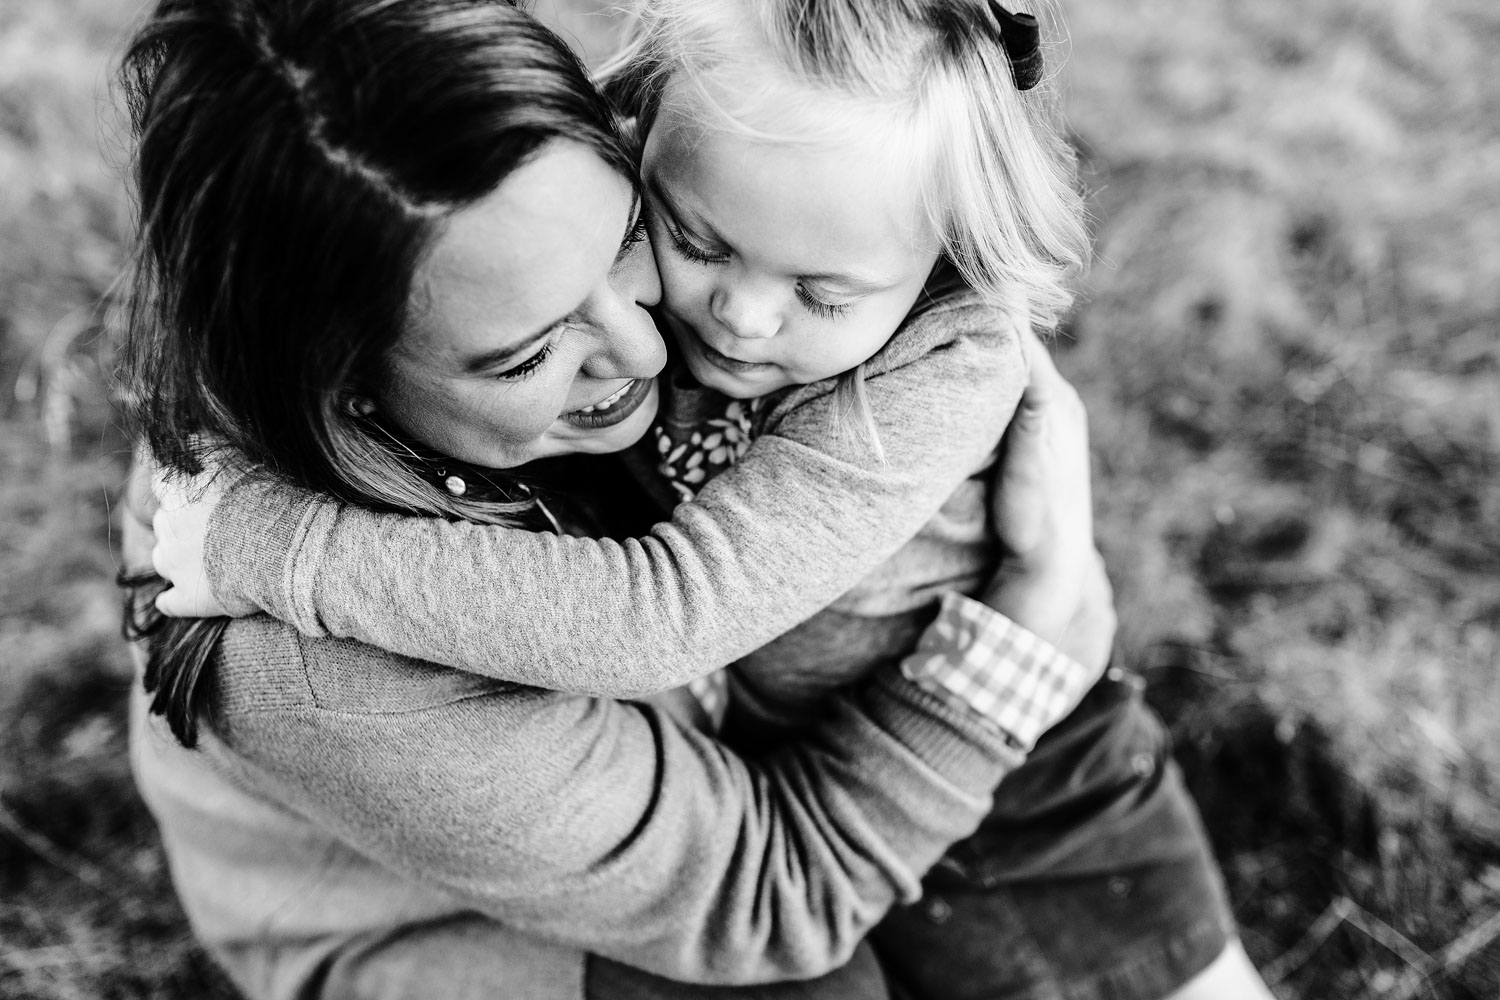 A girl wraps her arms around her mother in love during a lifestyle family photo session with Amy Wright, who is based out of Roseville, California.